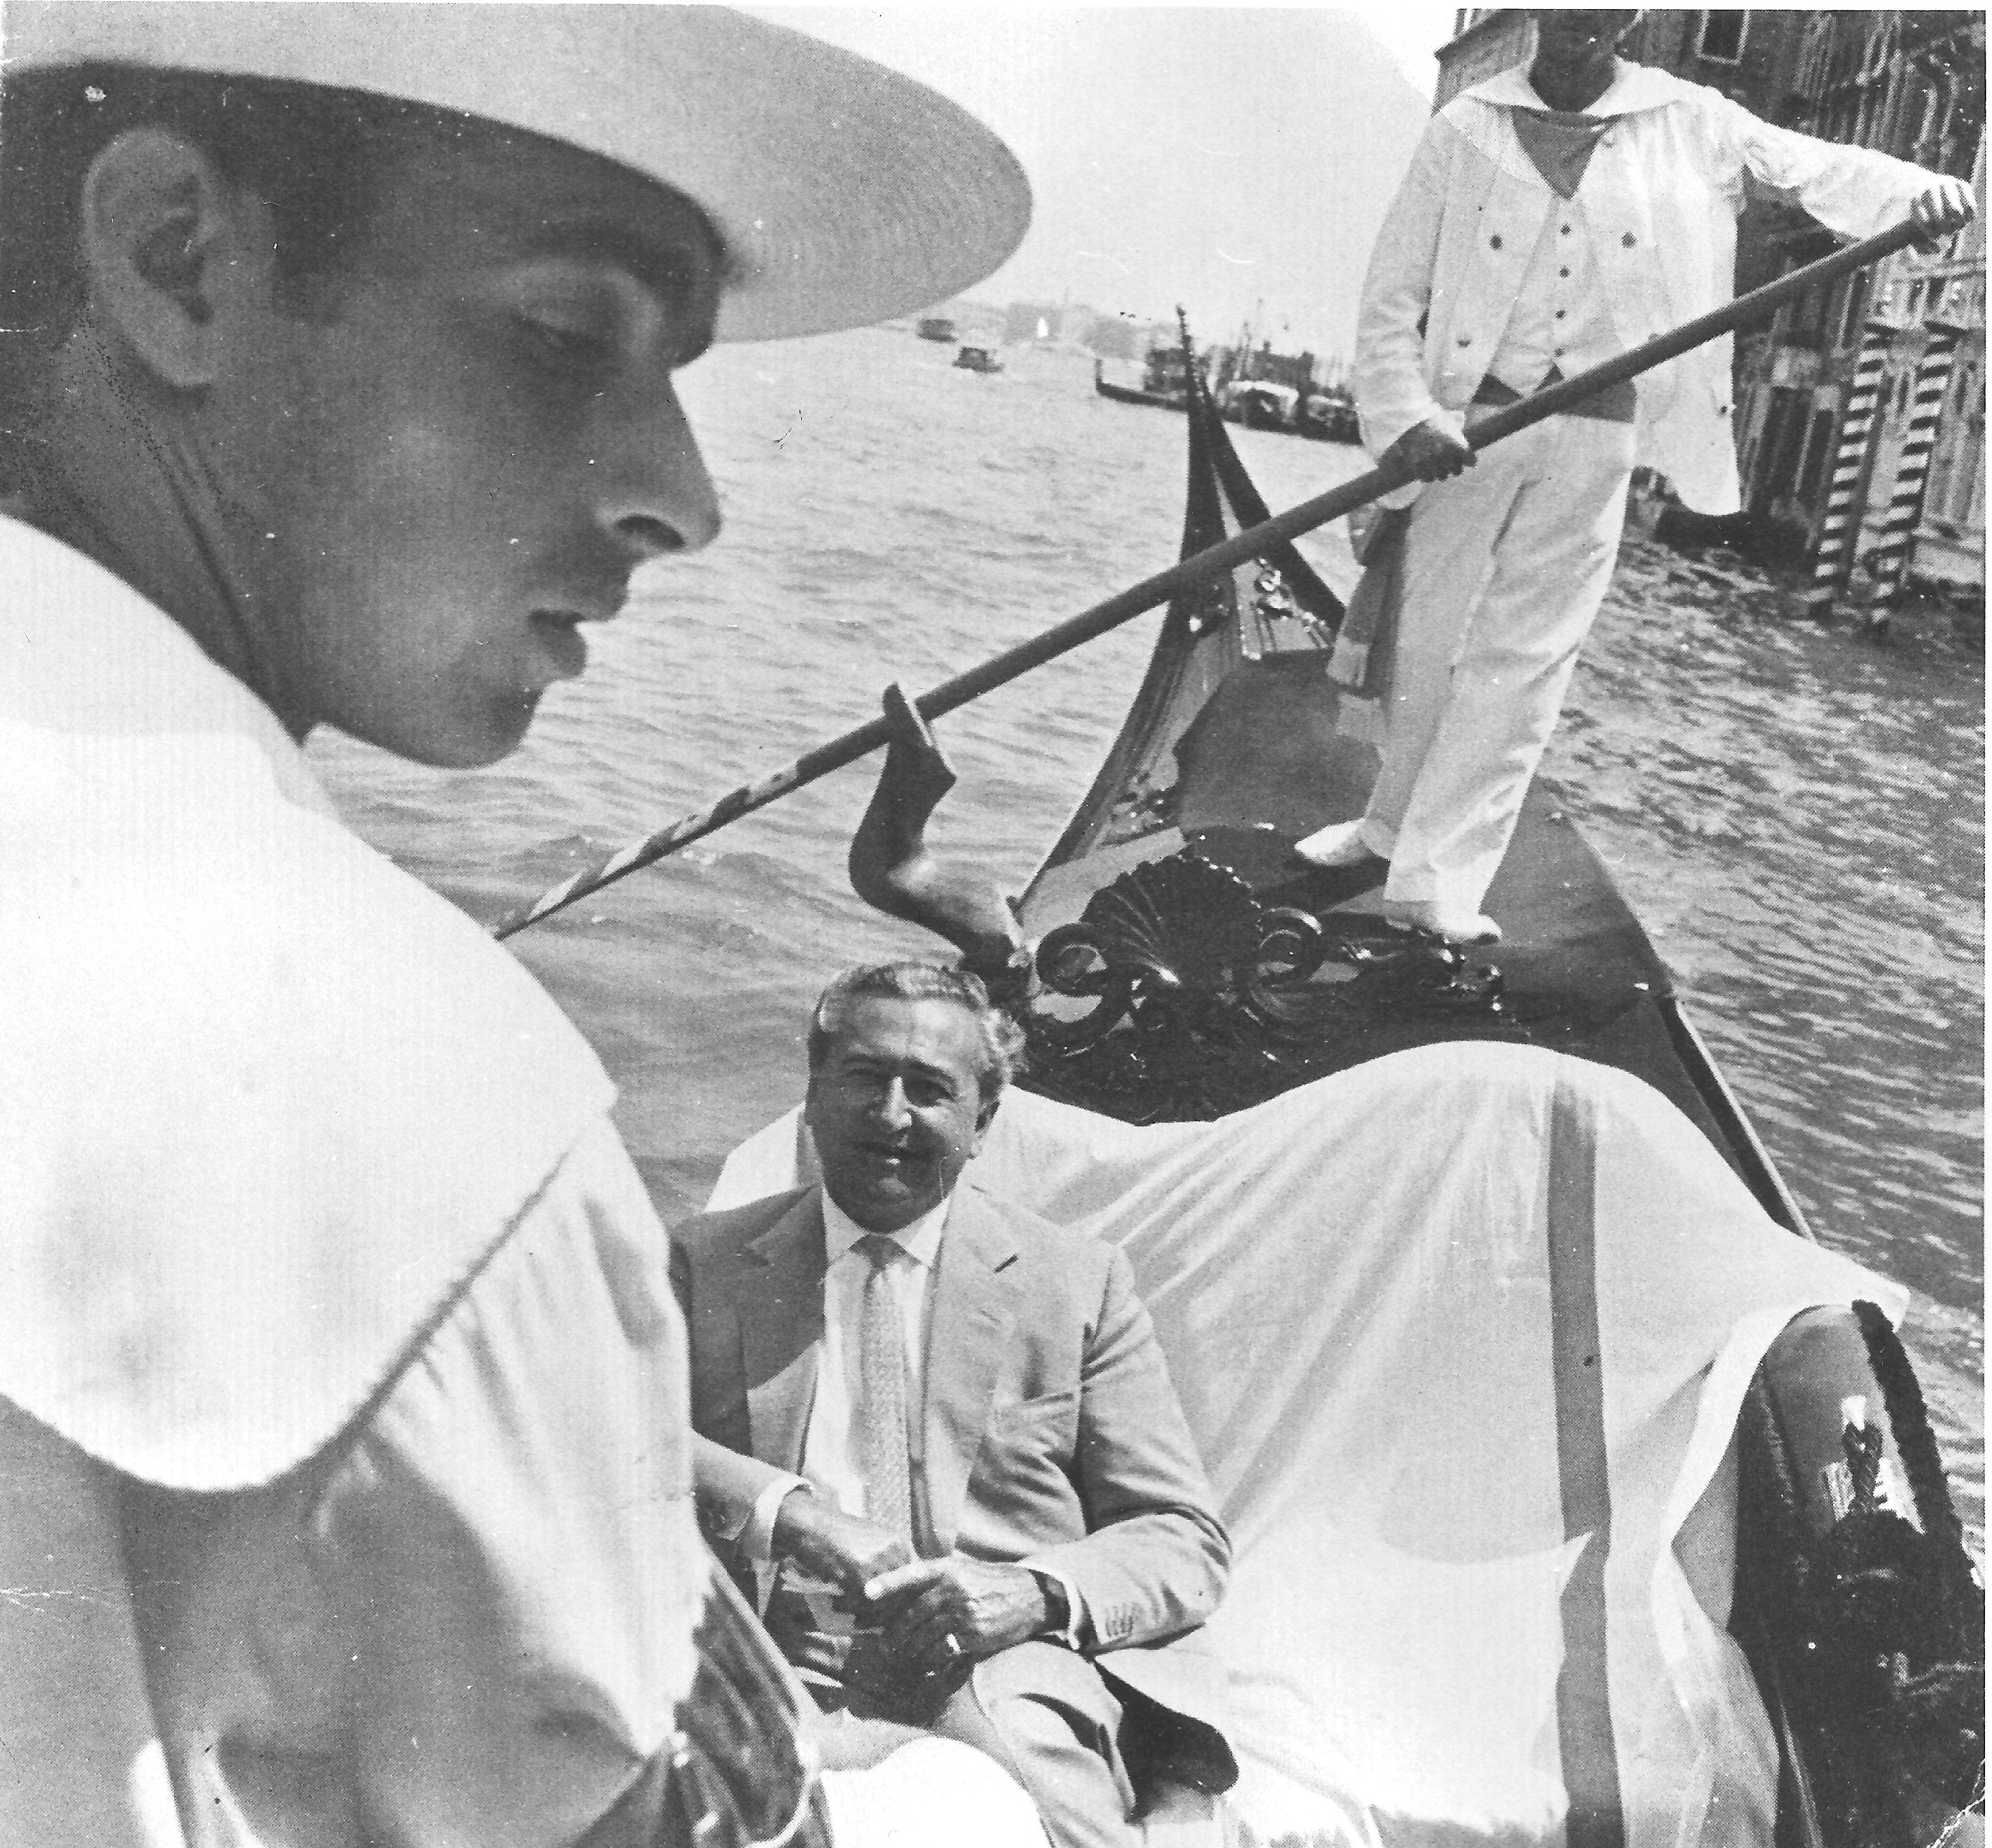 Arthur Jeffress in his gondola on the grand canal